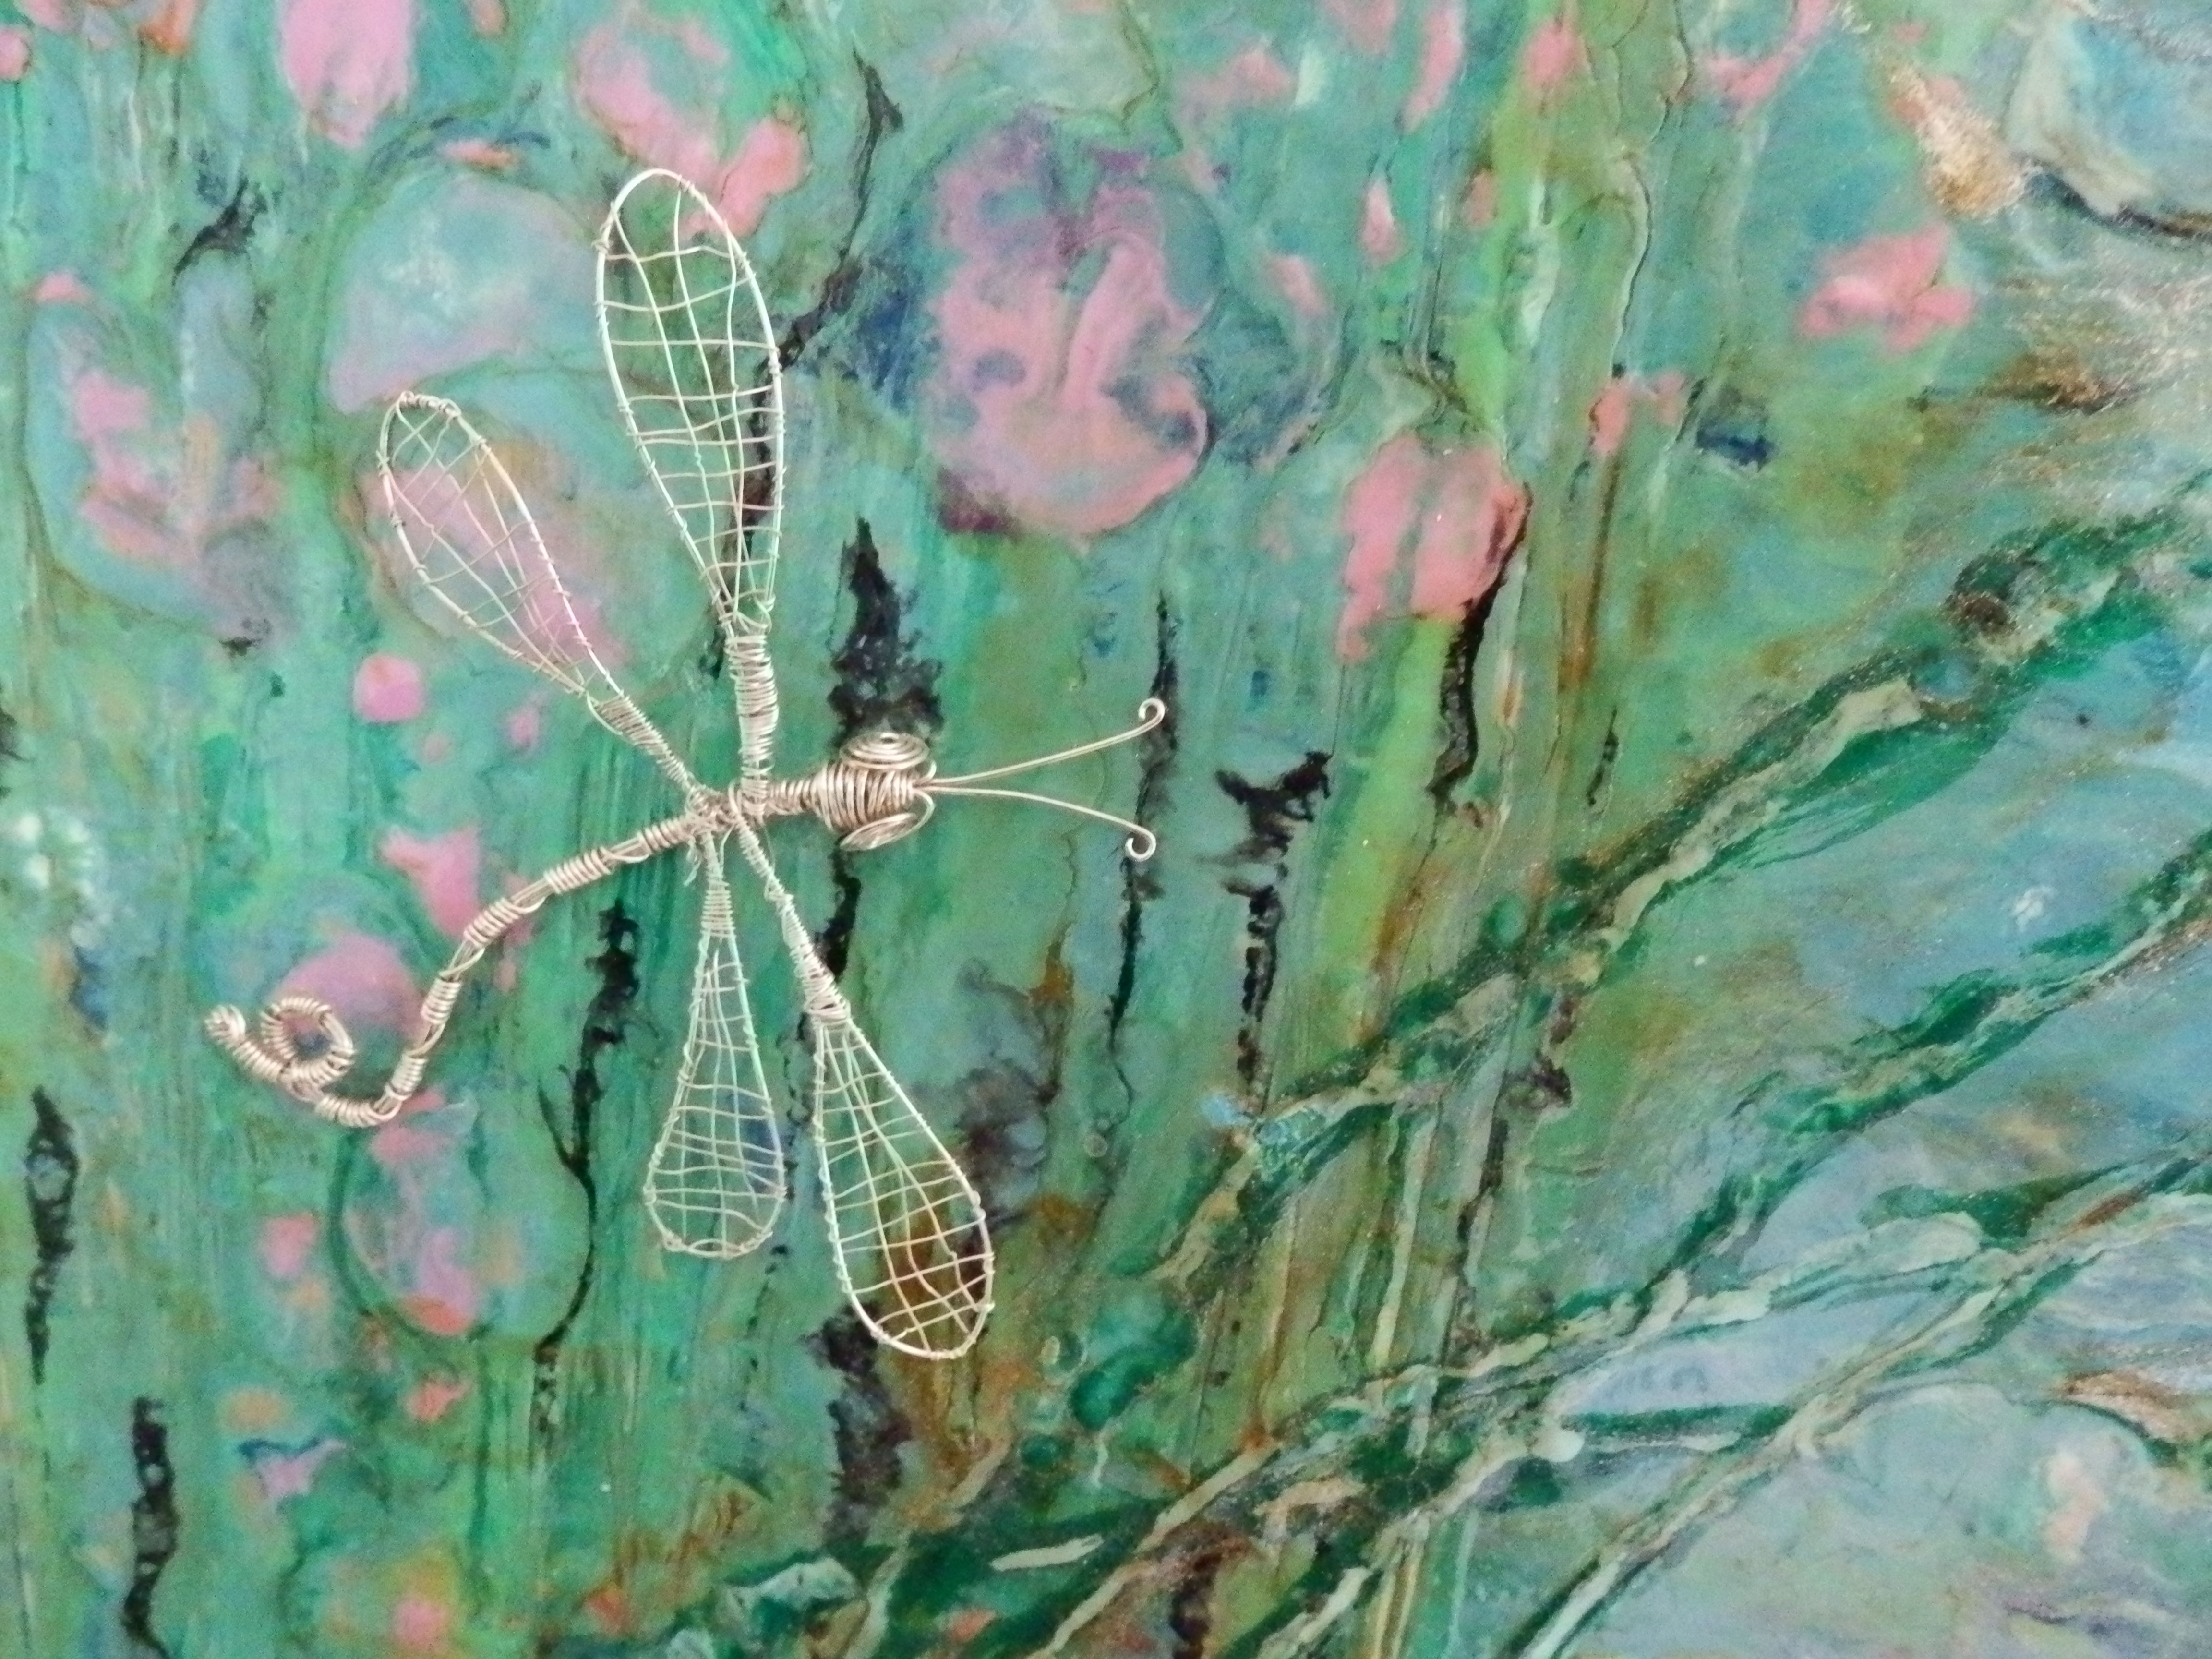 Pin by JuKaMo on dragonfly | Pinterest | Dragonflies